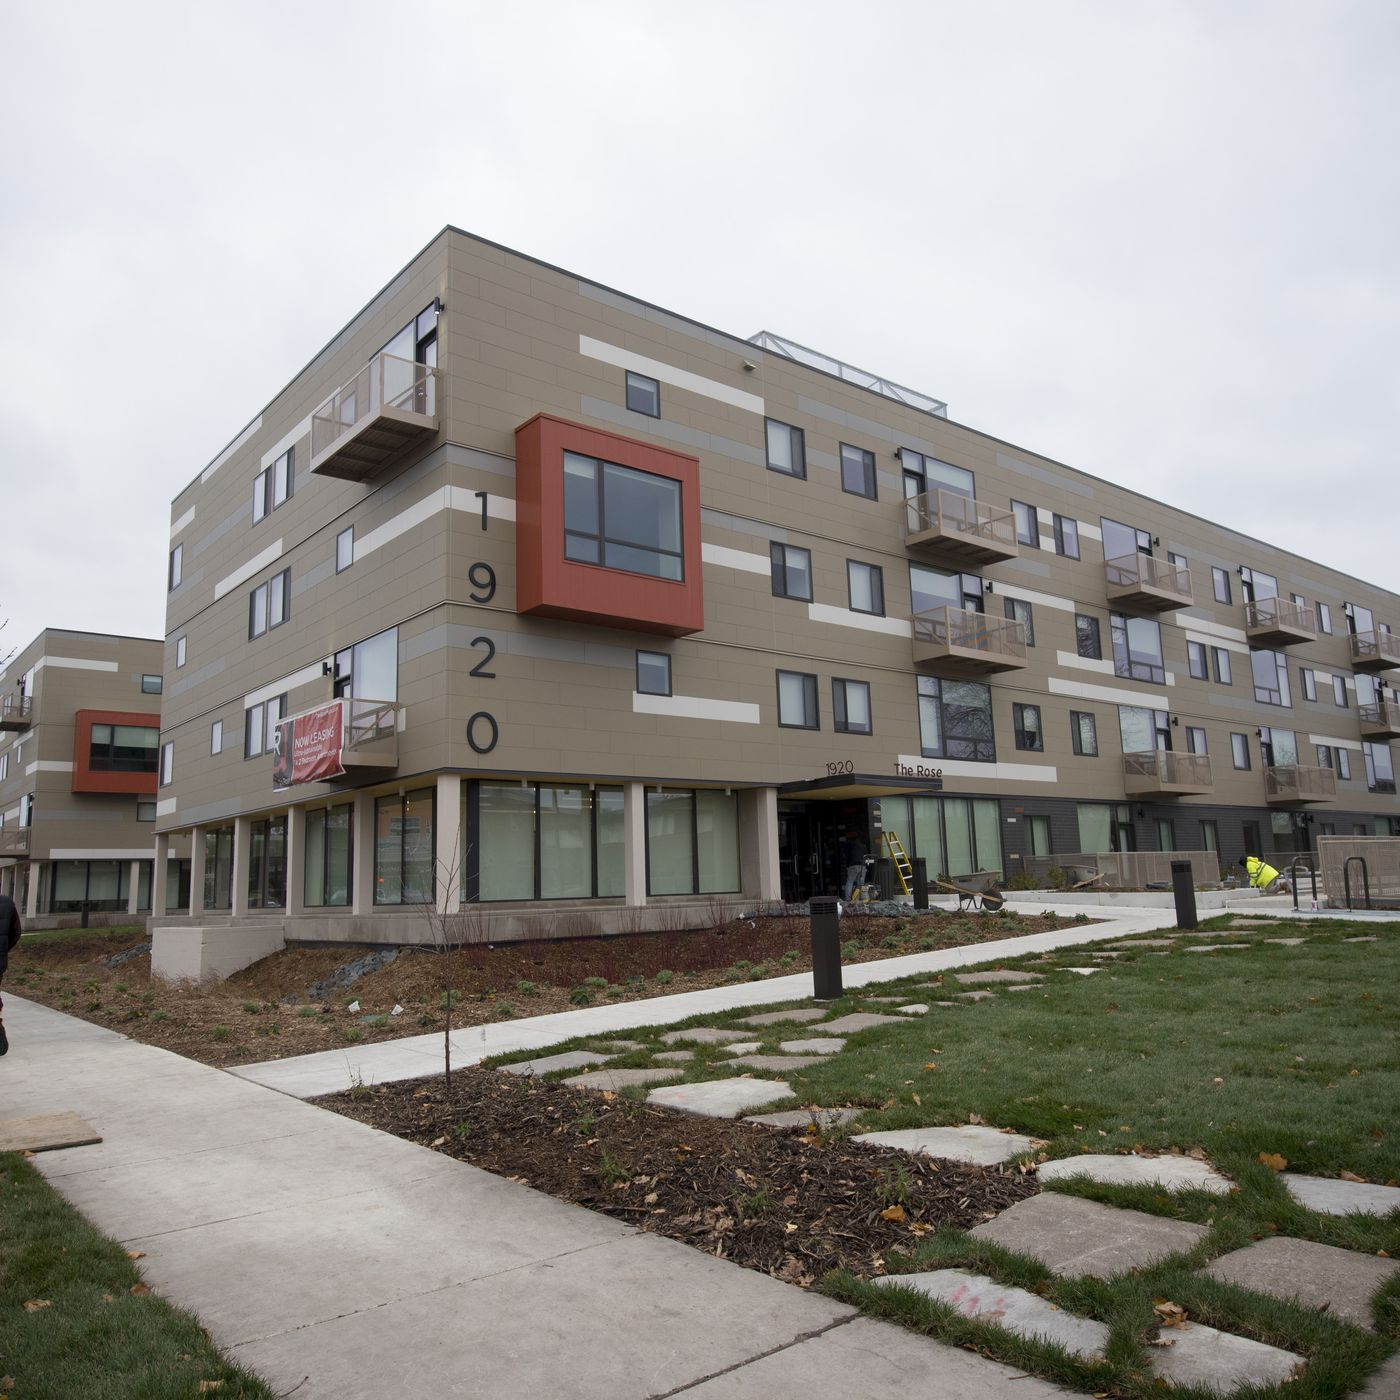 Solving affordable housing: Creative solutions around the U S  - Curbed